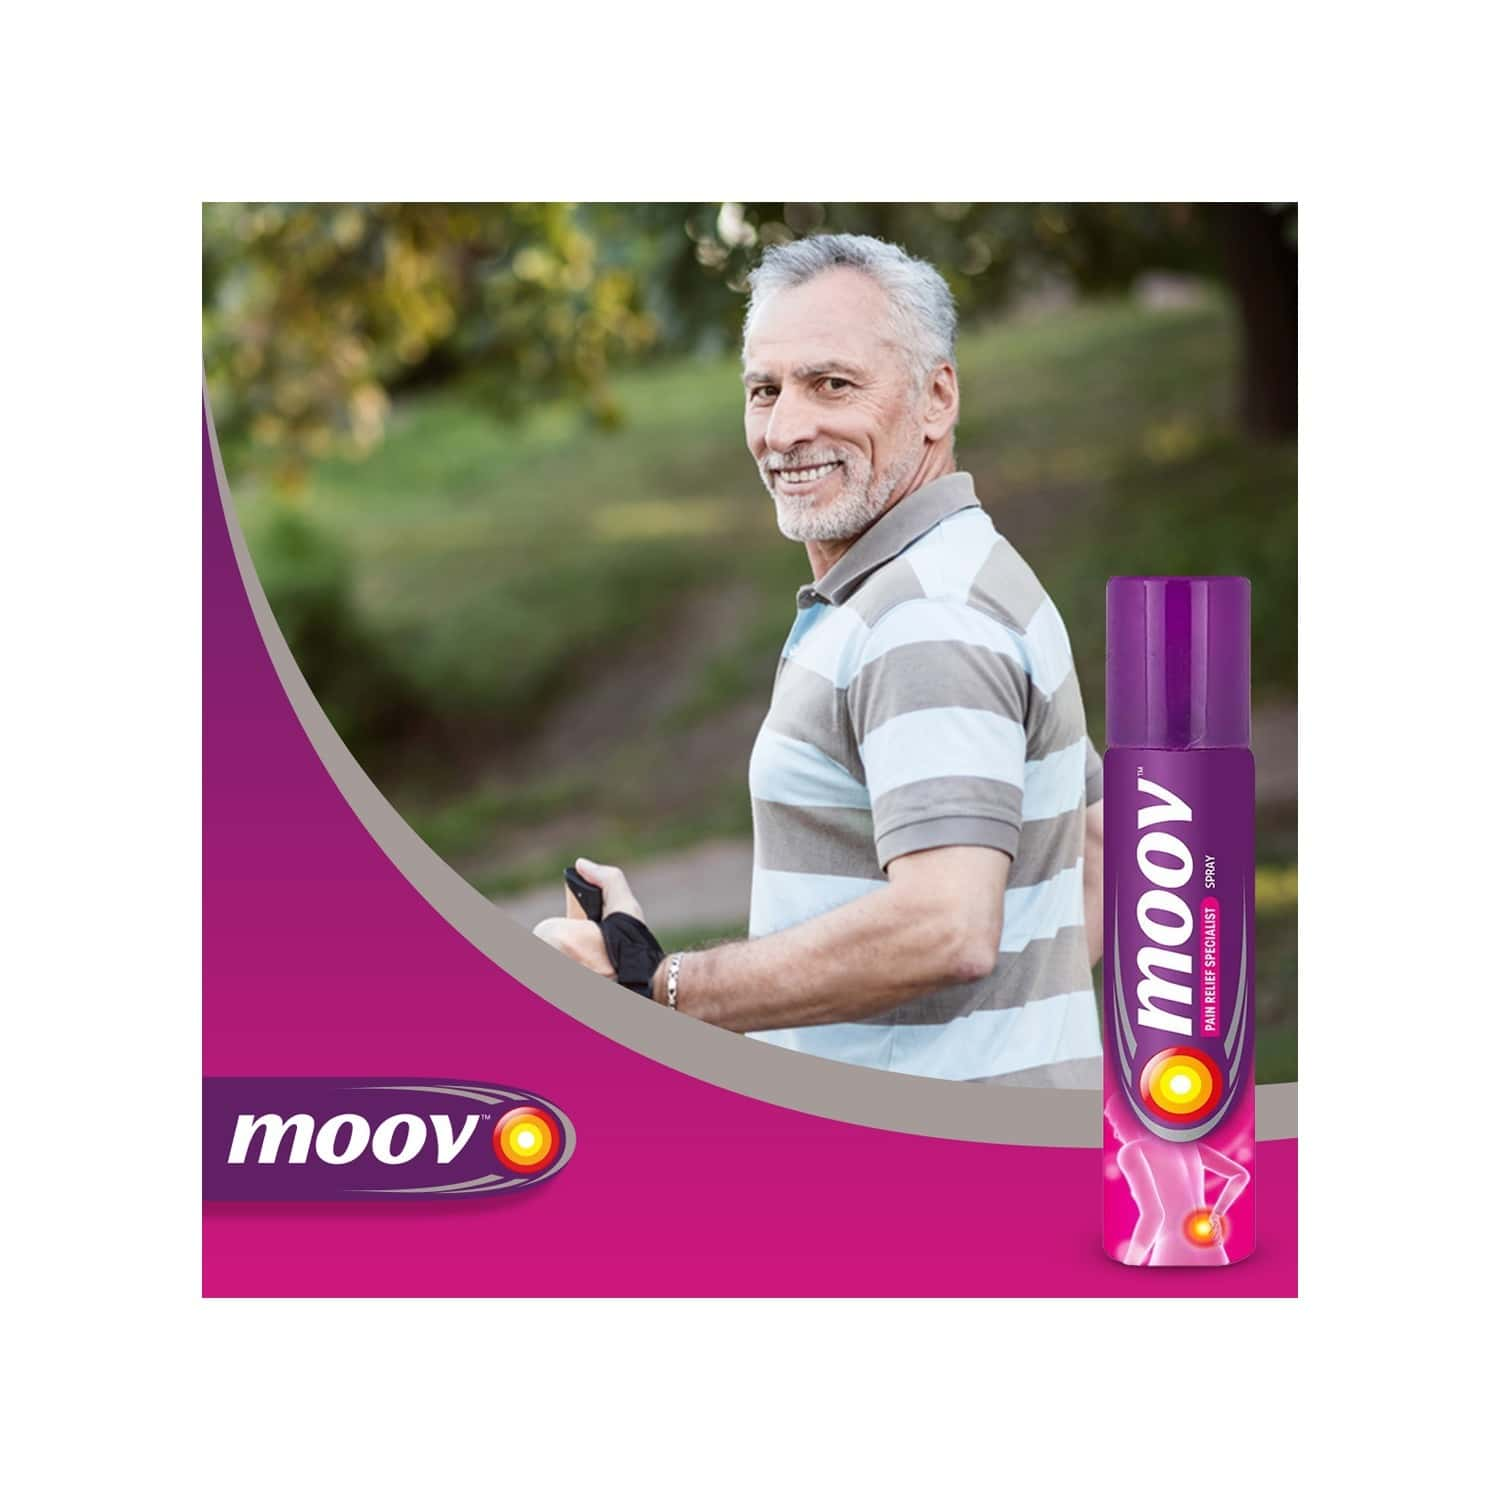 Moov Pain Relief Spray Bottle Of 35 G